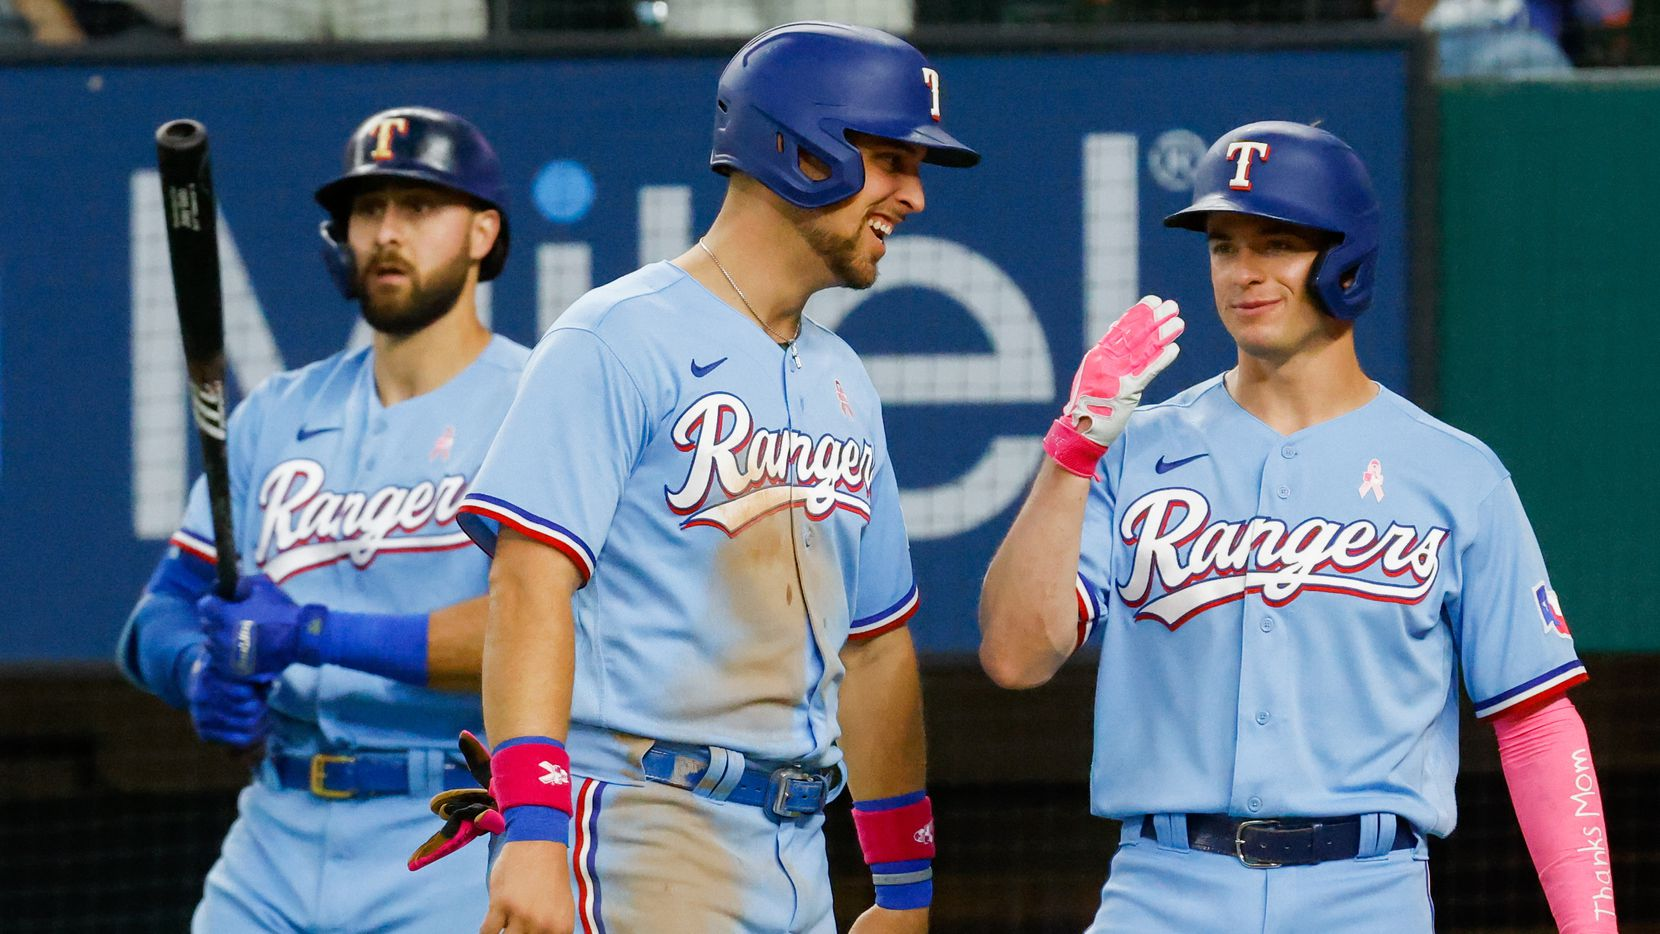 Texas Rangers second baseman Nick Solak (15) and Texas Rangers first baseman Nate Lowe (30) smile after scoring off Texas Rangers right fielder Adolis García (53) homer to left center against the Seattle Mariners at the bottom of the fifth at Globe Life Field on Sunday, May 9, 2021, in Arlington.  scored on the hit. The Rangers won, 10-2. (Juan Figueroa/The Dallas Morning News)